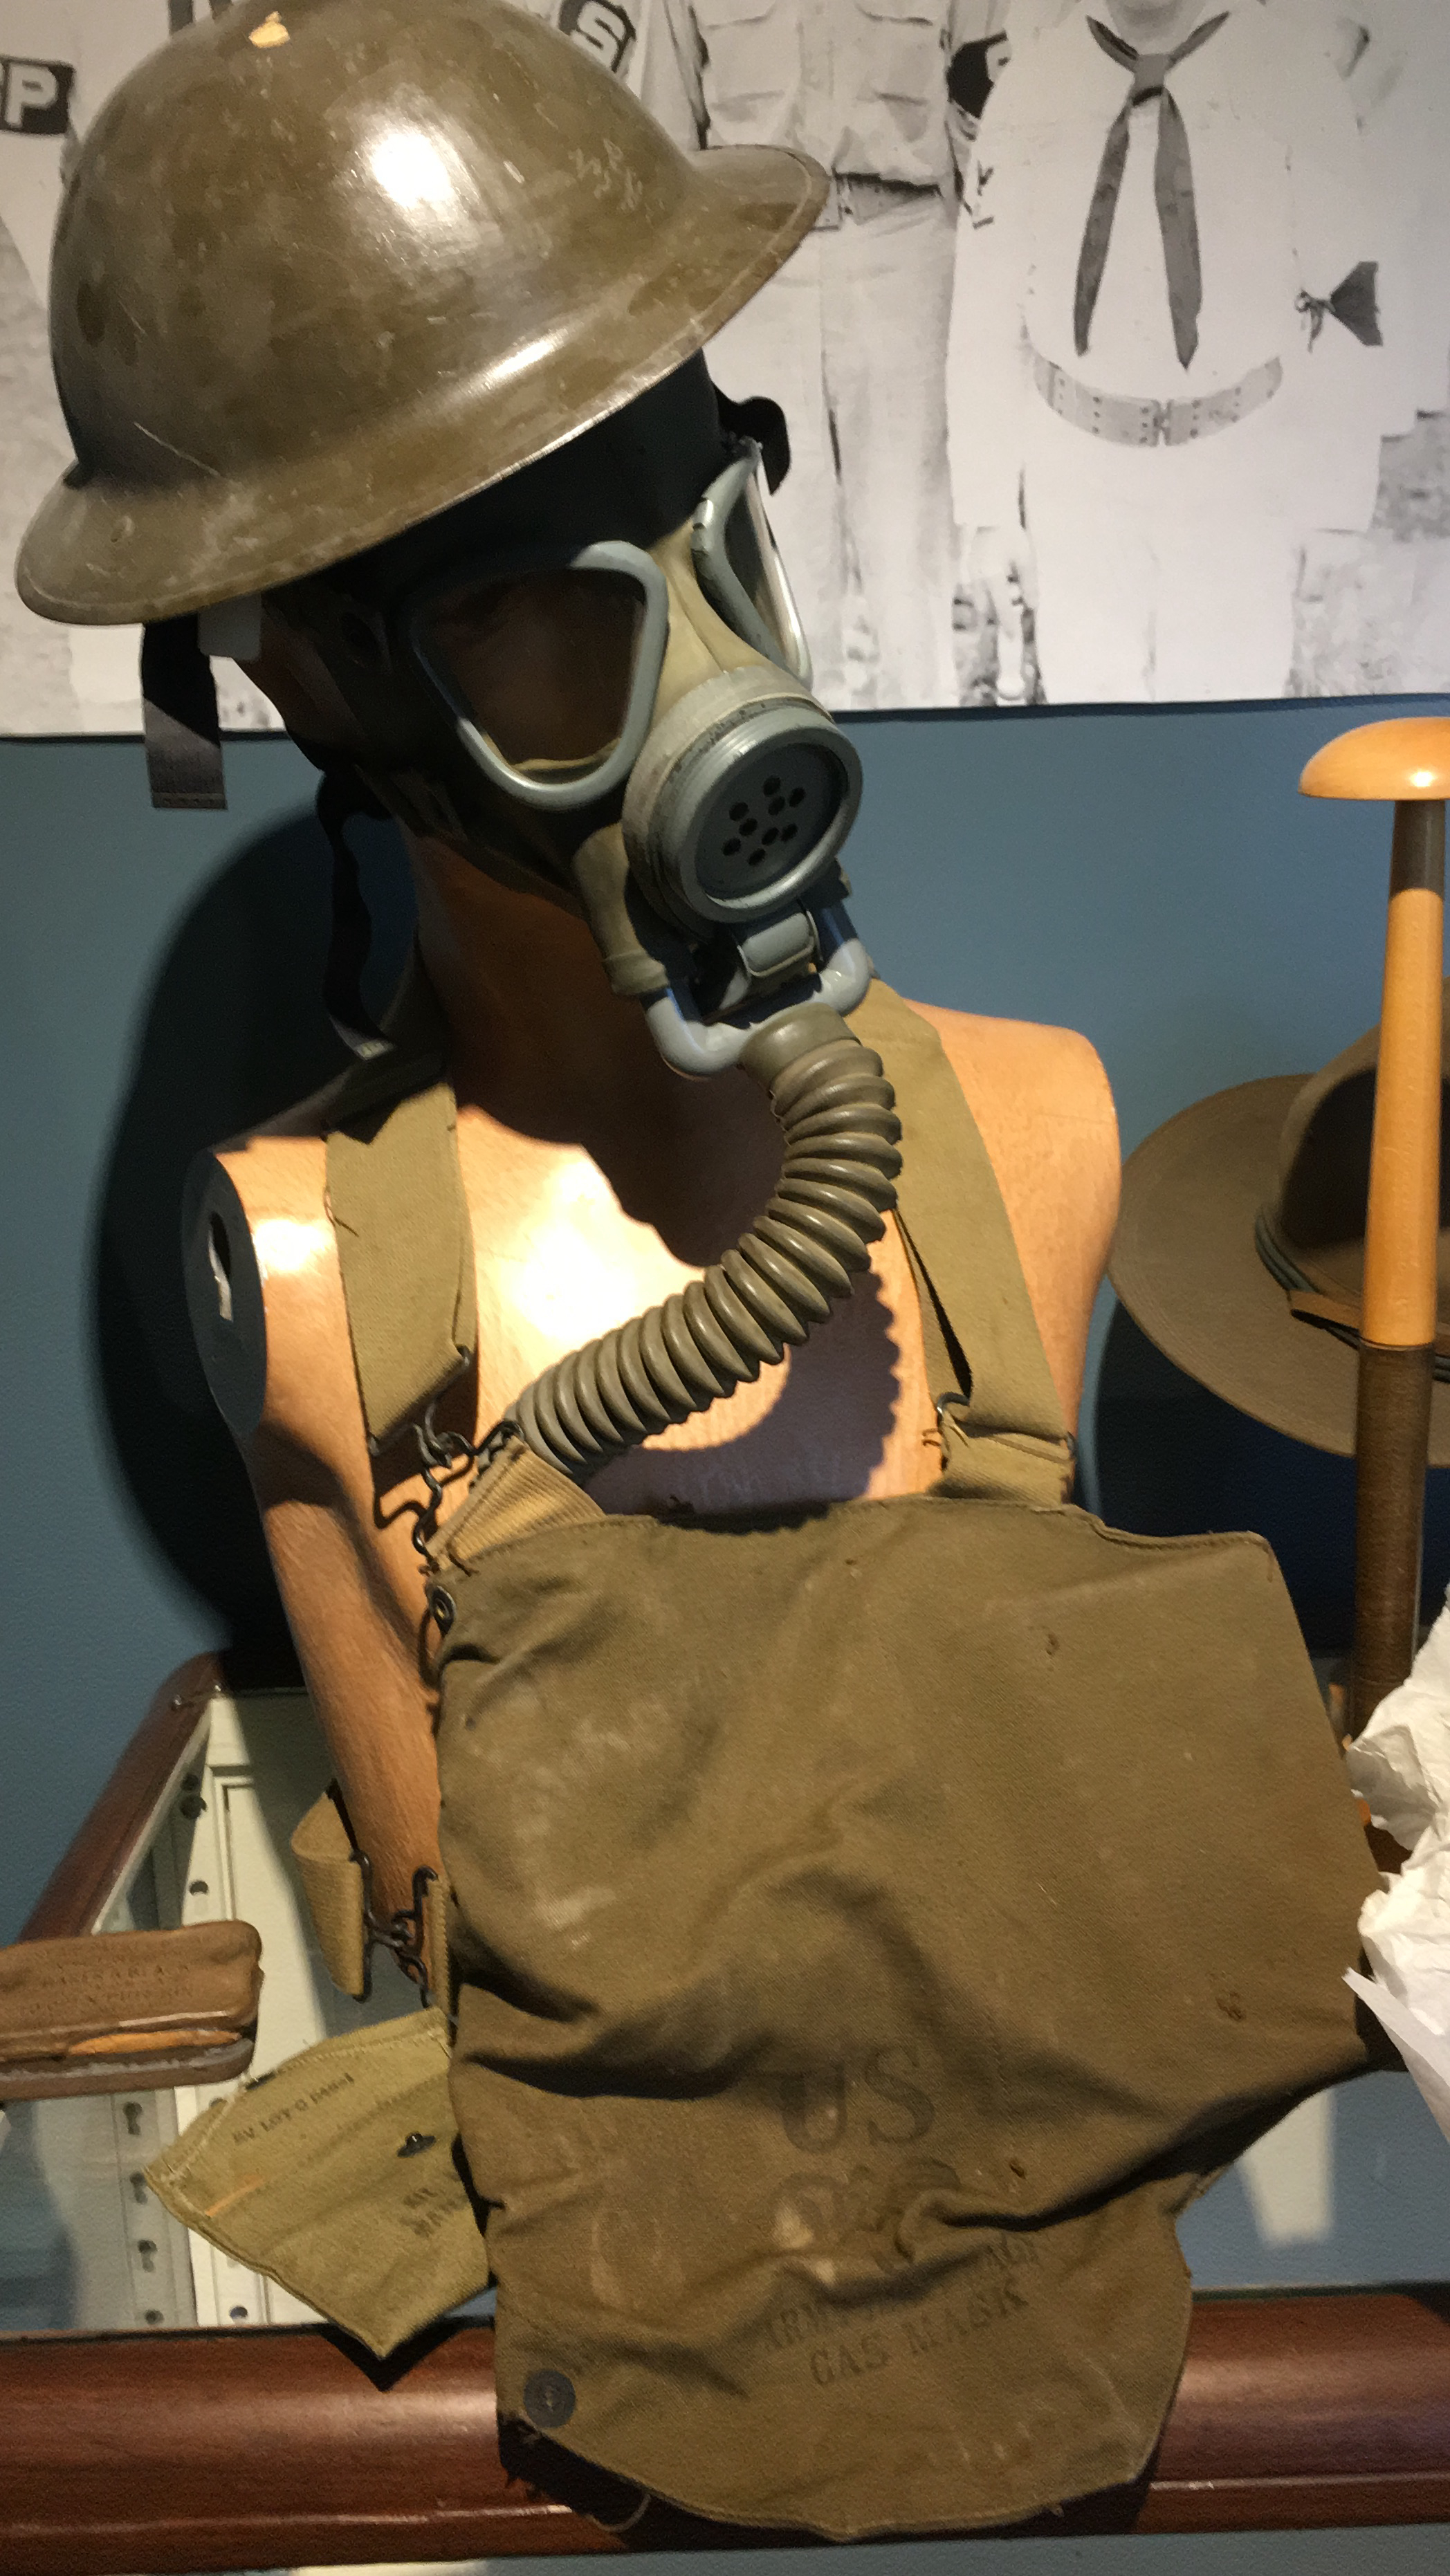 Gas mask used in WWII